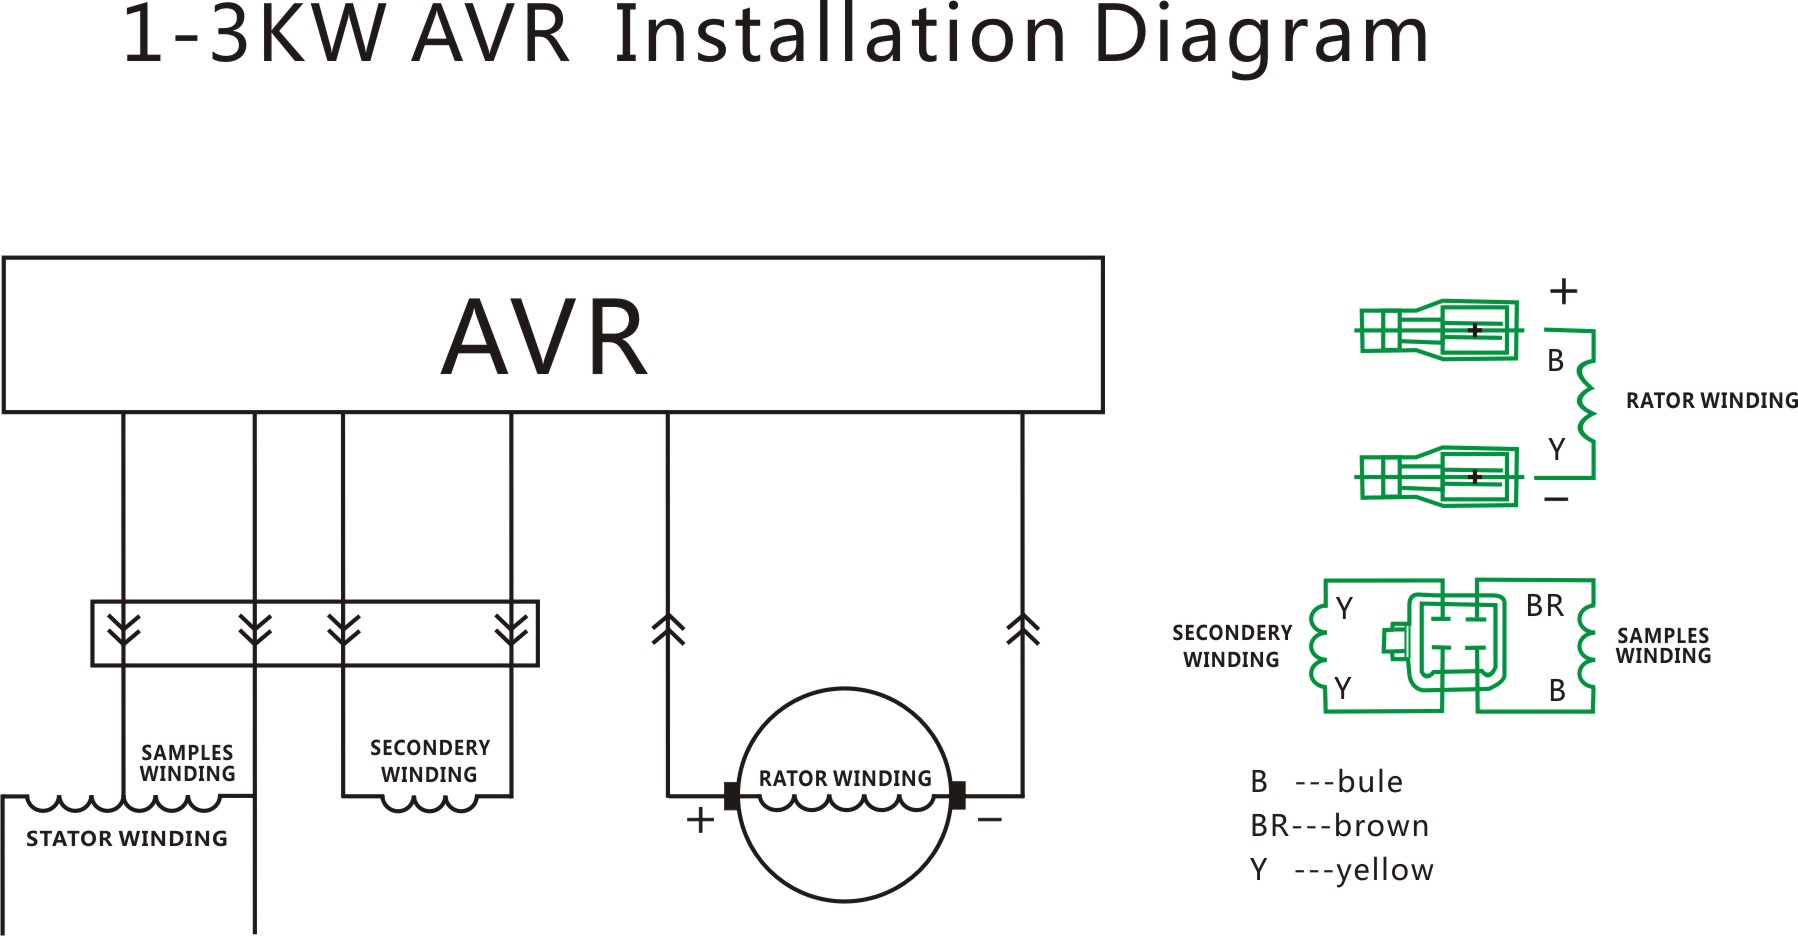 what is 1-3kw avr